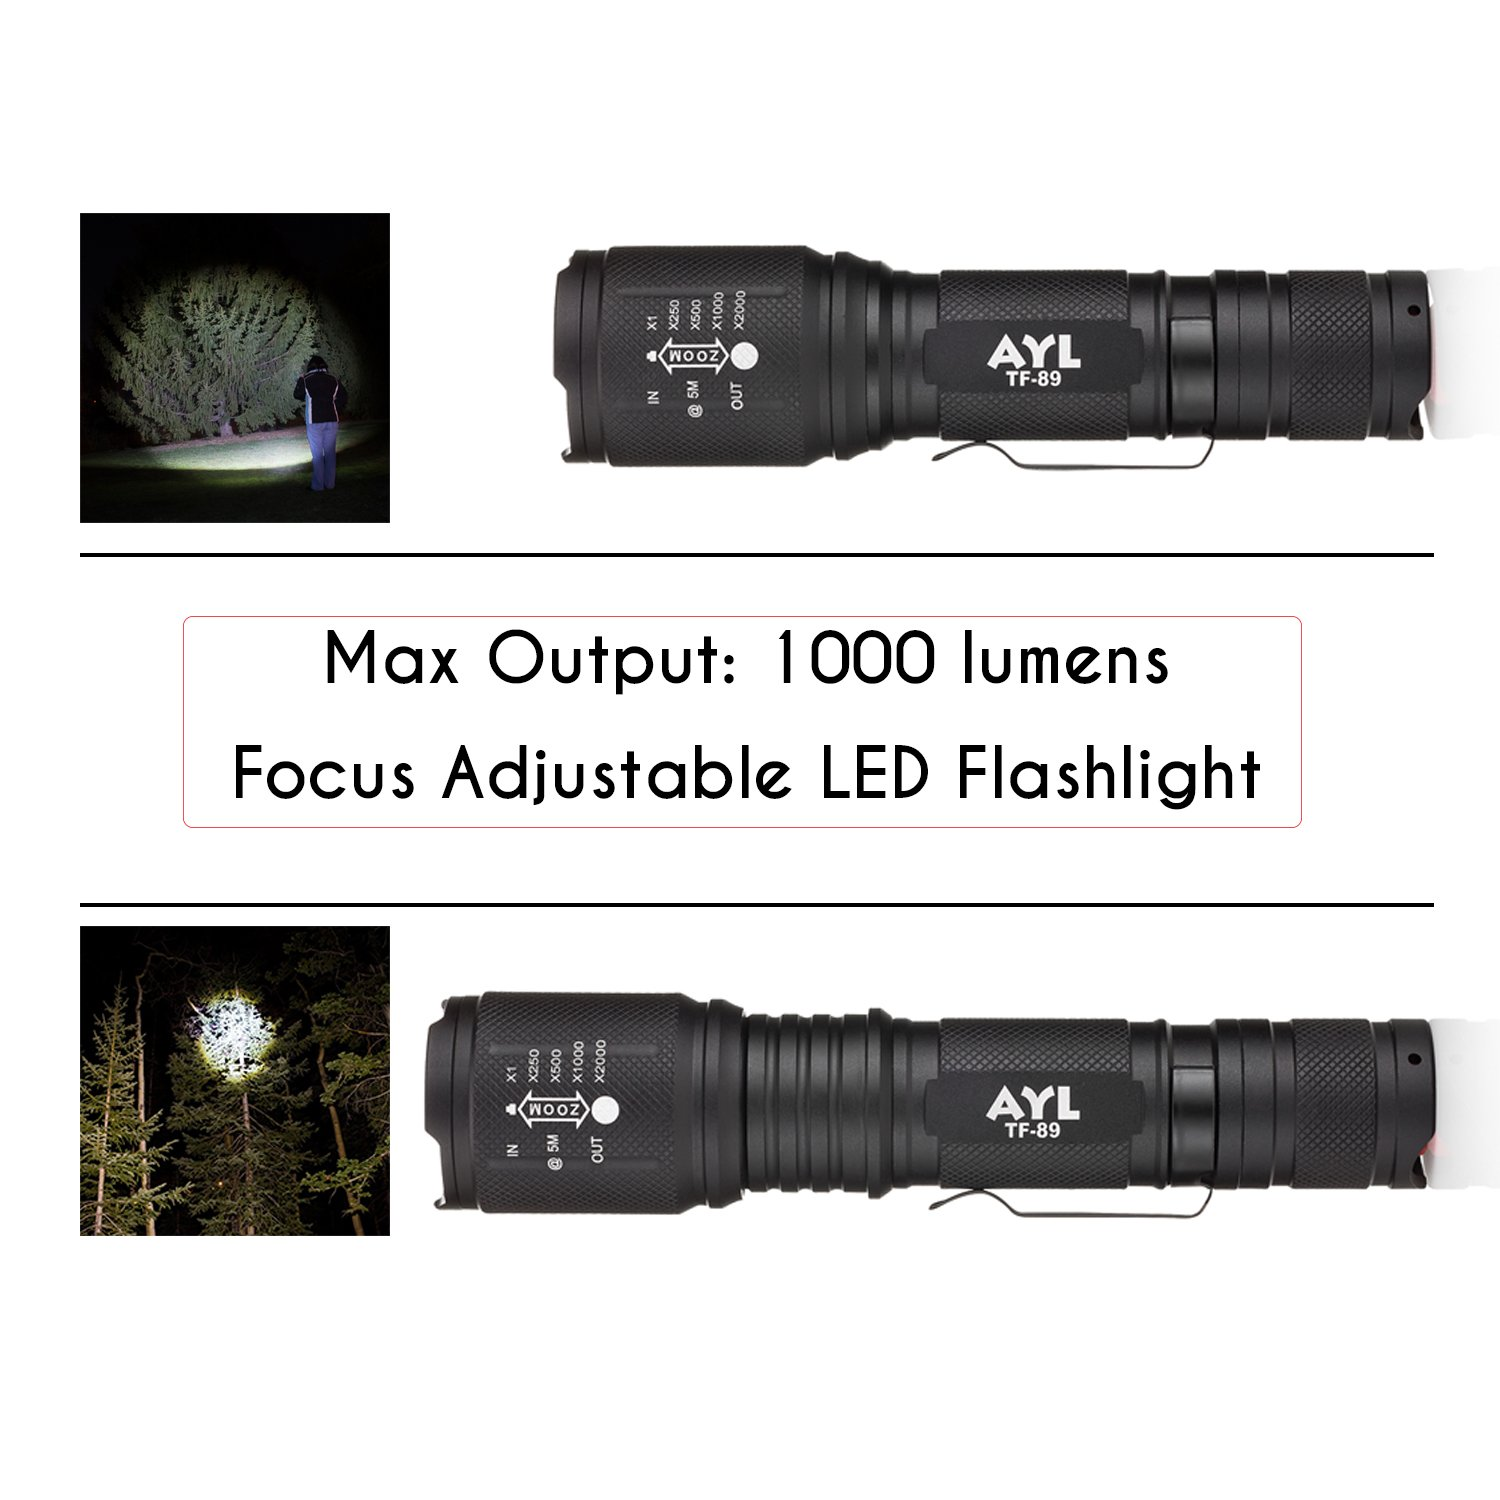 AYL LED Flashlight Tactical Flashlight - [2 Pack] 1000 High Lumens CREE Torch Light, Ultra Bright Emergency Handheld Flashlights by AYL (Image #3)